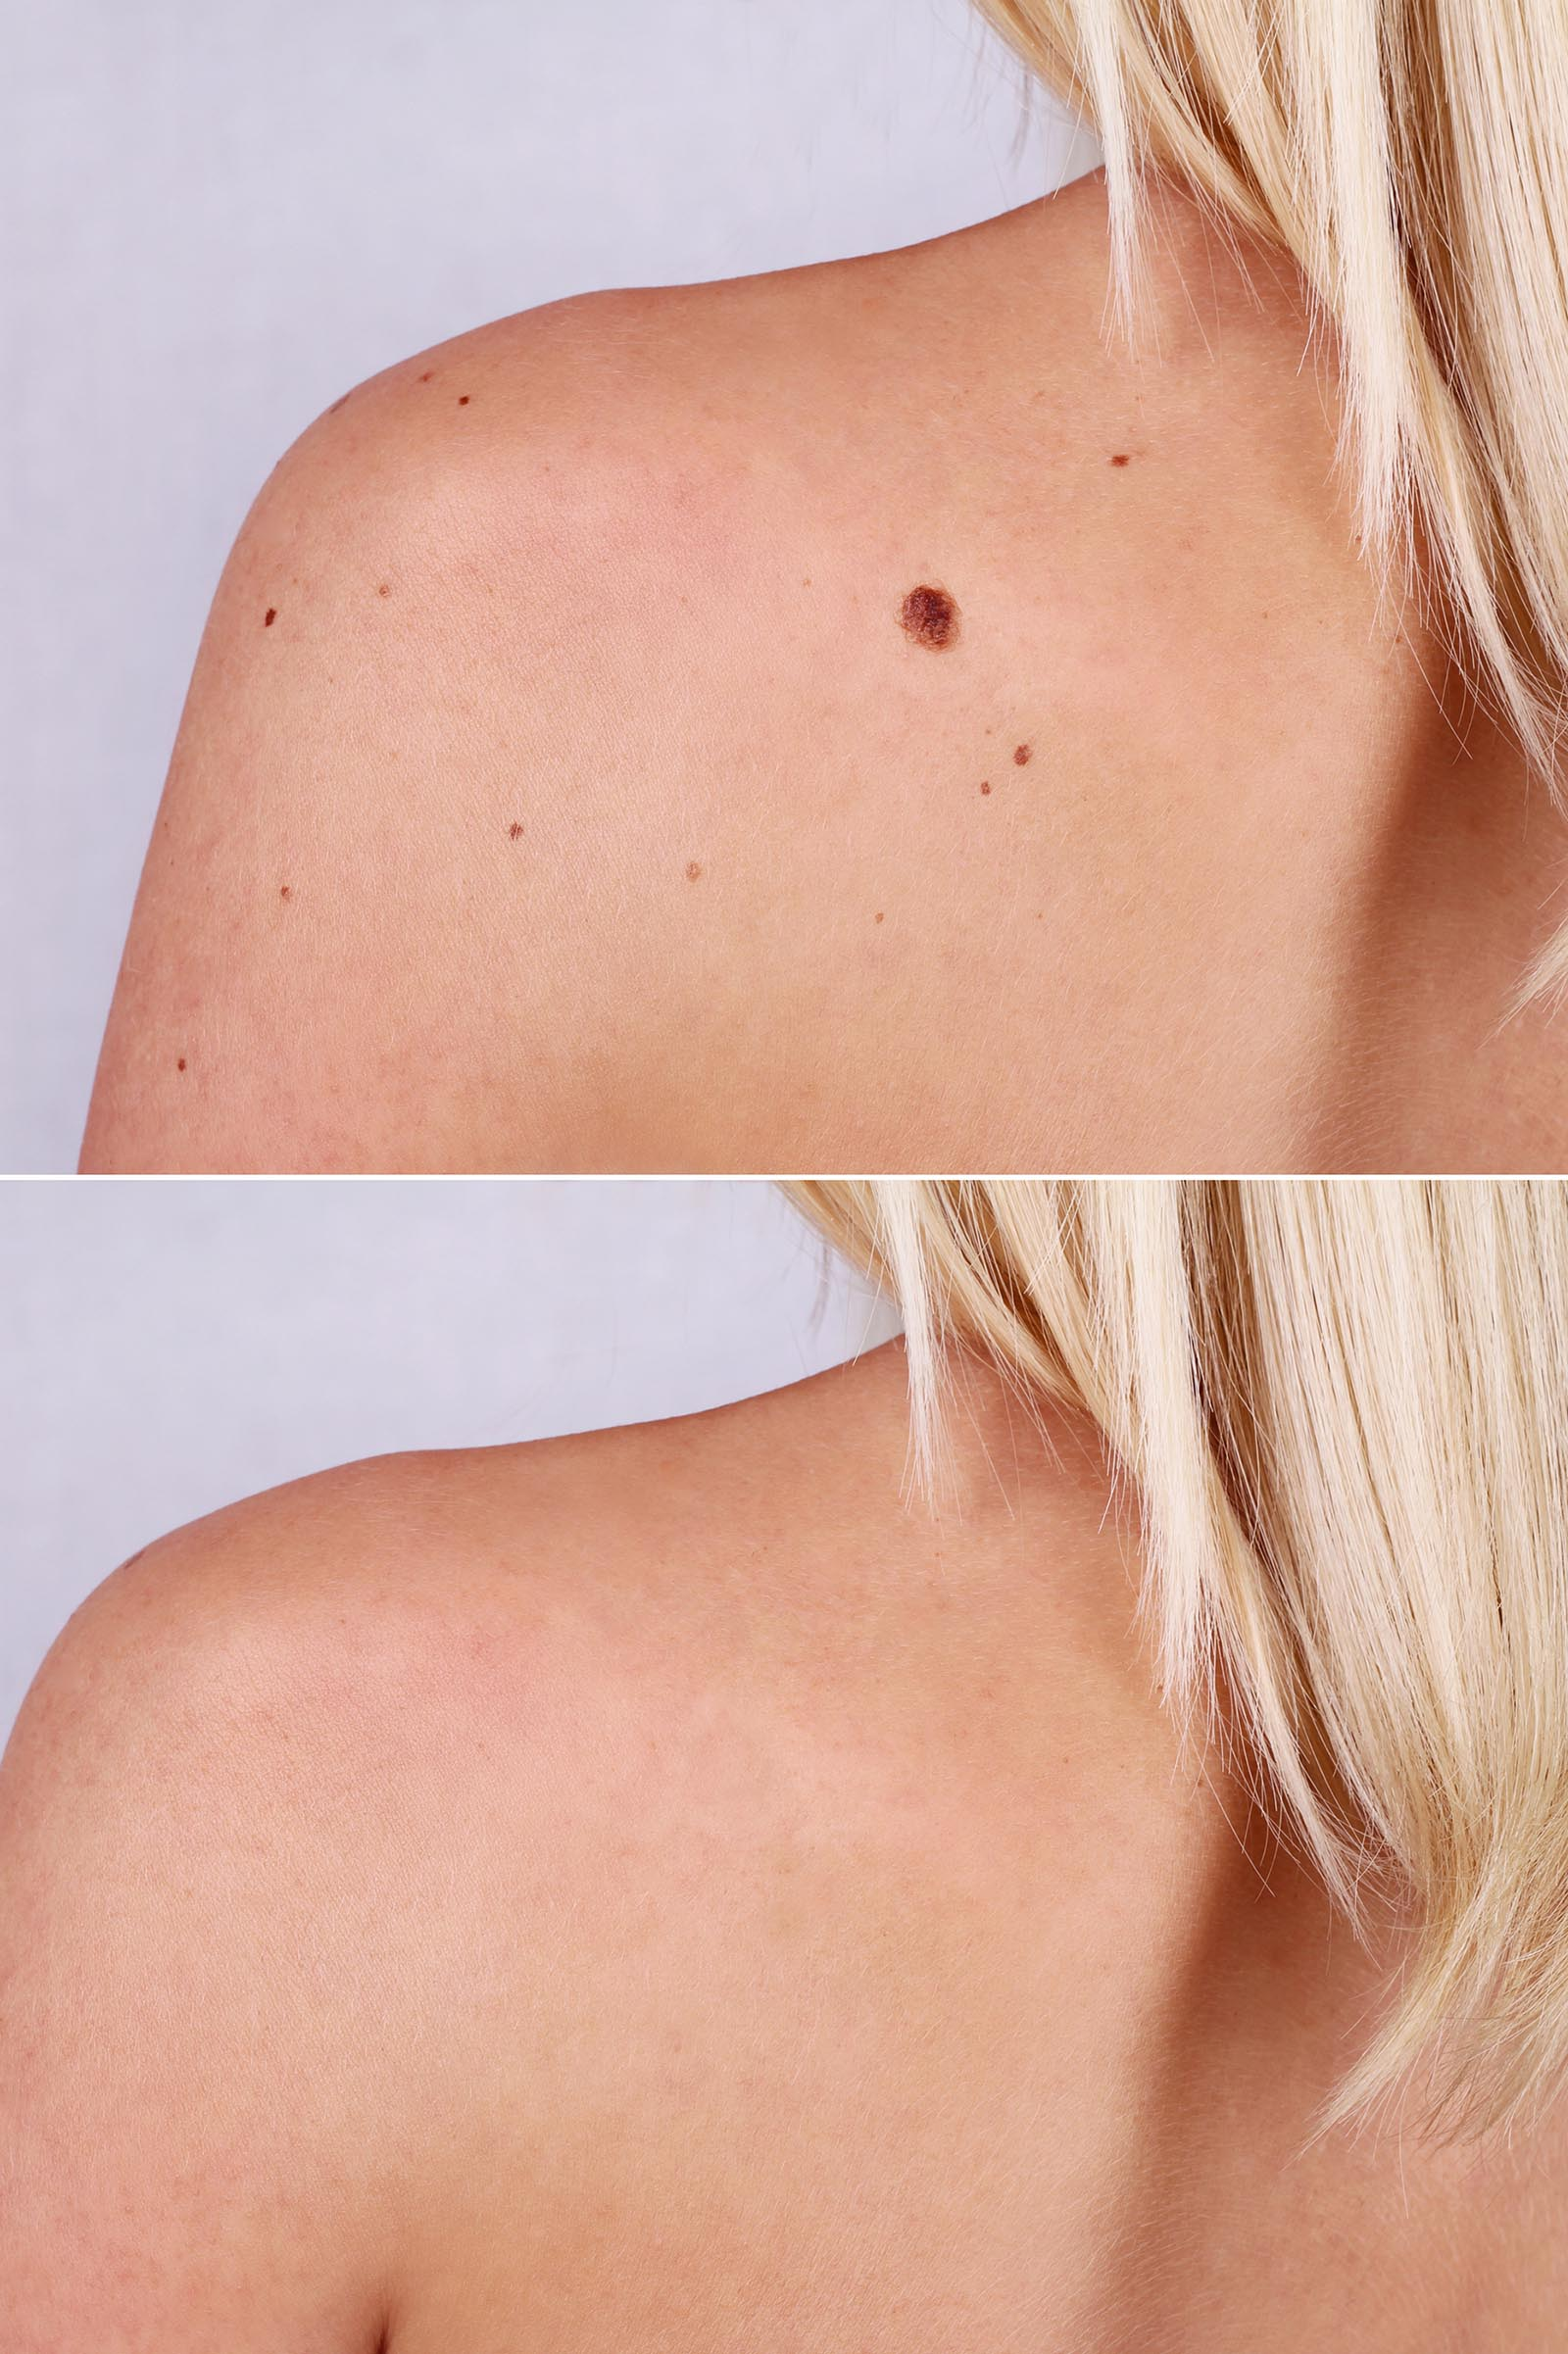 How to safely remove moles